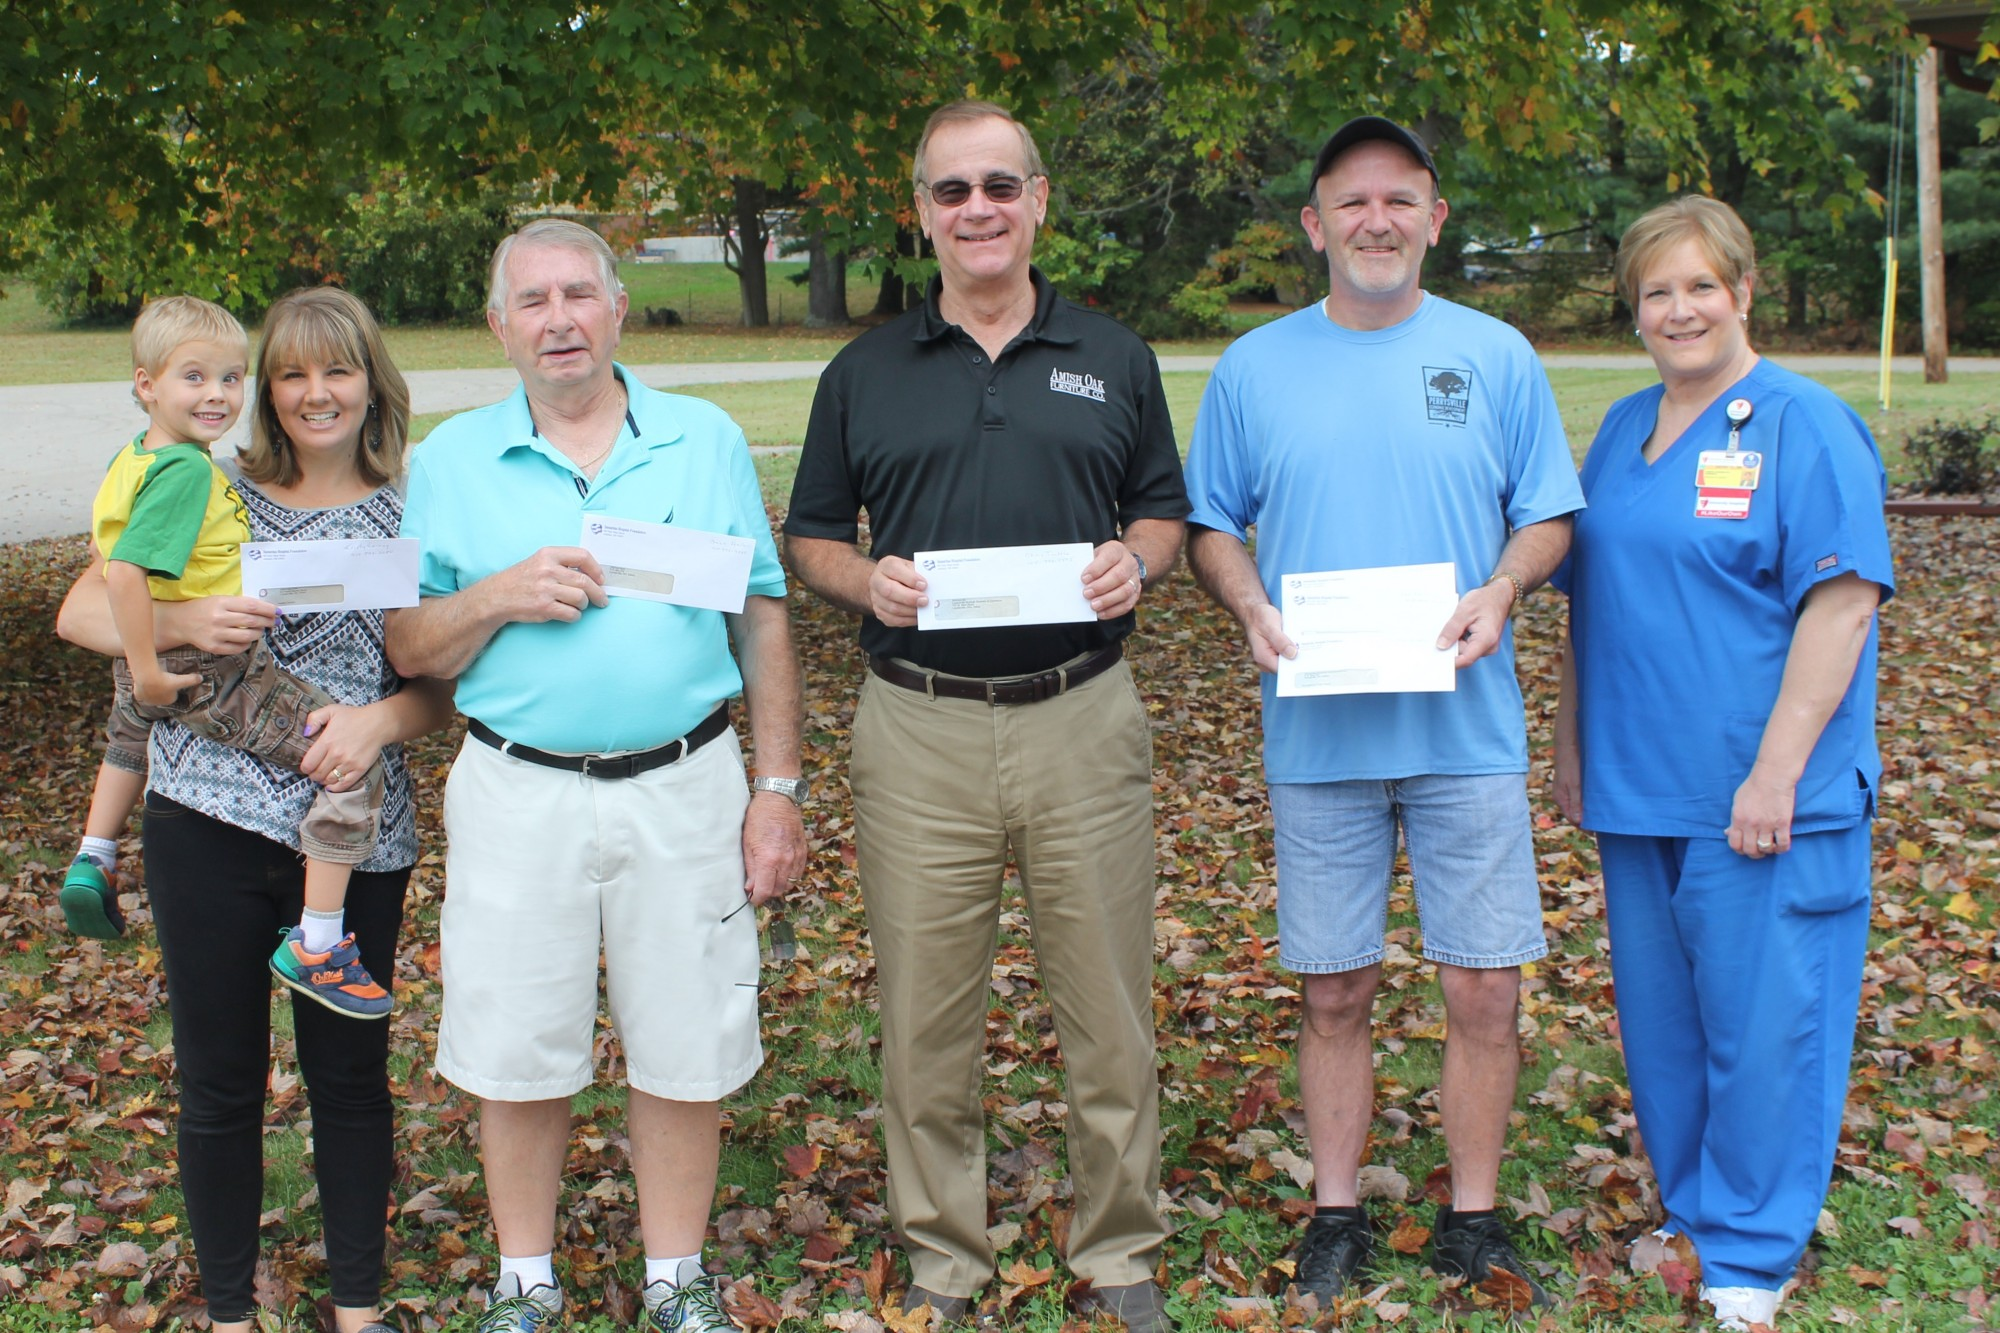 Samaritan Hospital Foundation Awards $10,000 to Loudonville-Perrysville Local Charities